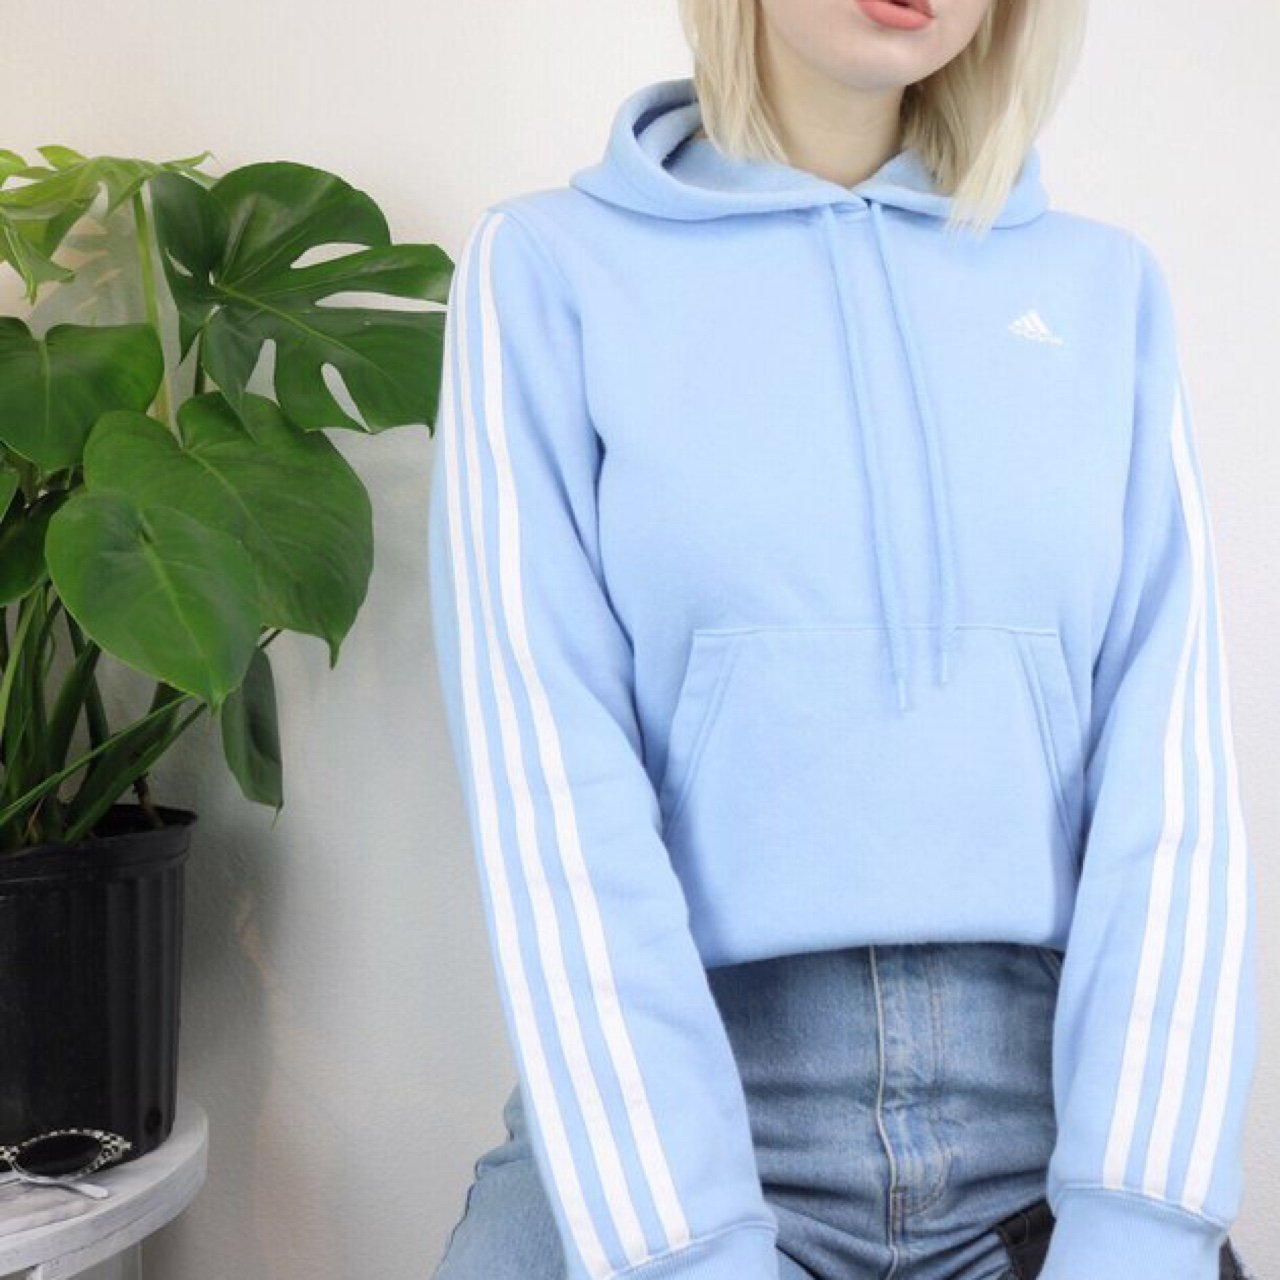 6052afb9ea6d Repop Baby blue Adidas hoodie. Excellent condition with no M - Depop